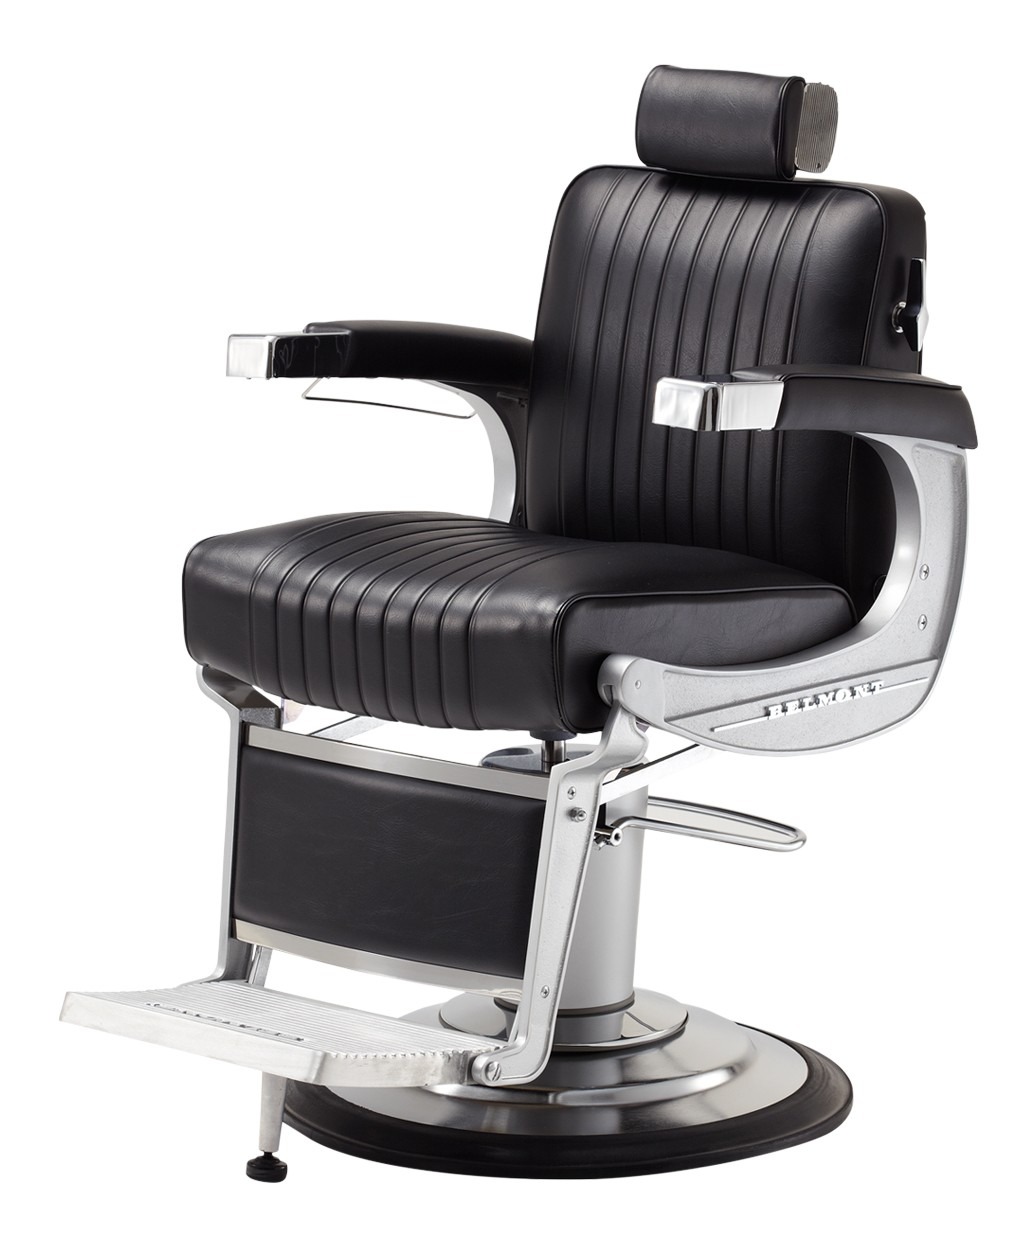 Belmont barber chairs - Takara Belmont Bb 225 Elegance Barber Chair